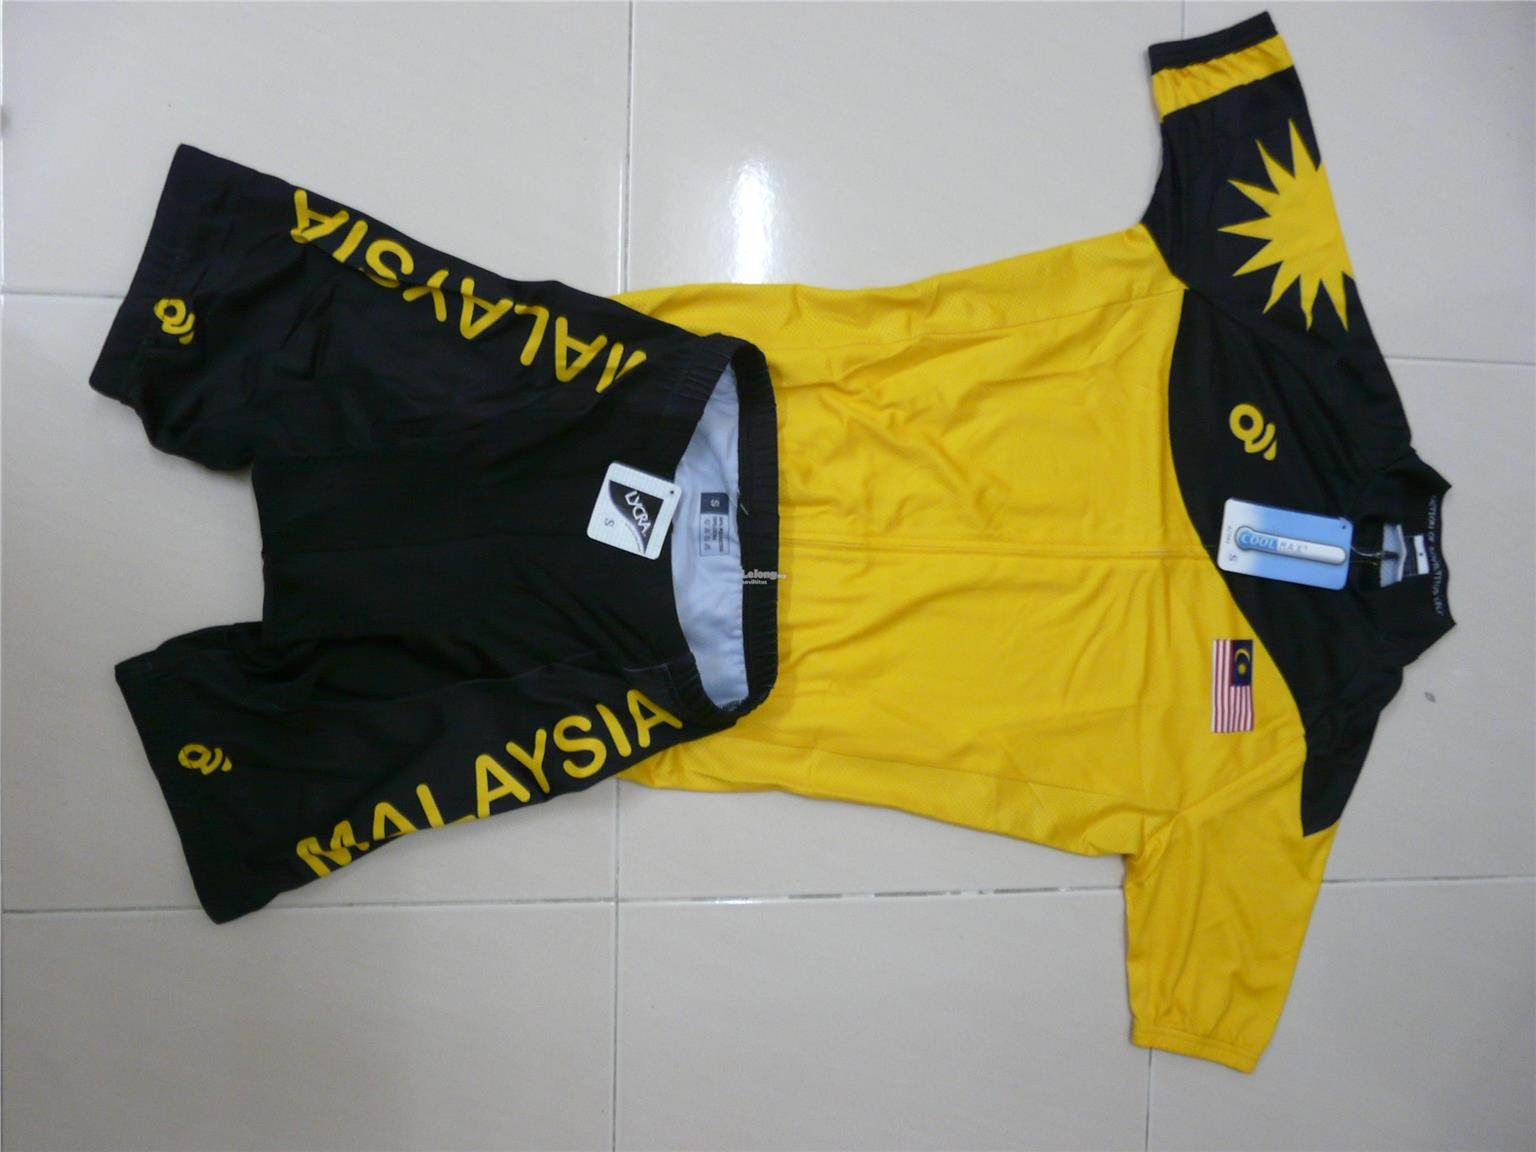 Malaysia Commonwealth Bicycle Top Jerseys Size XXXL (Clearance)